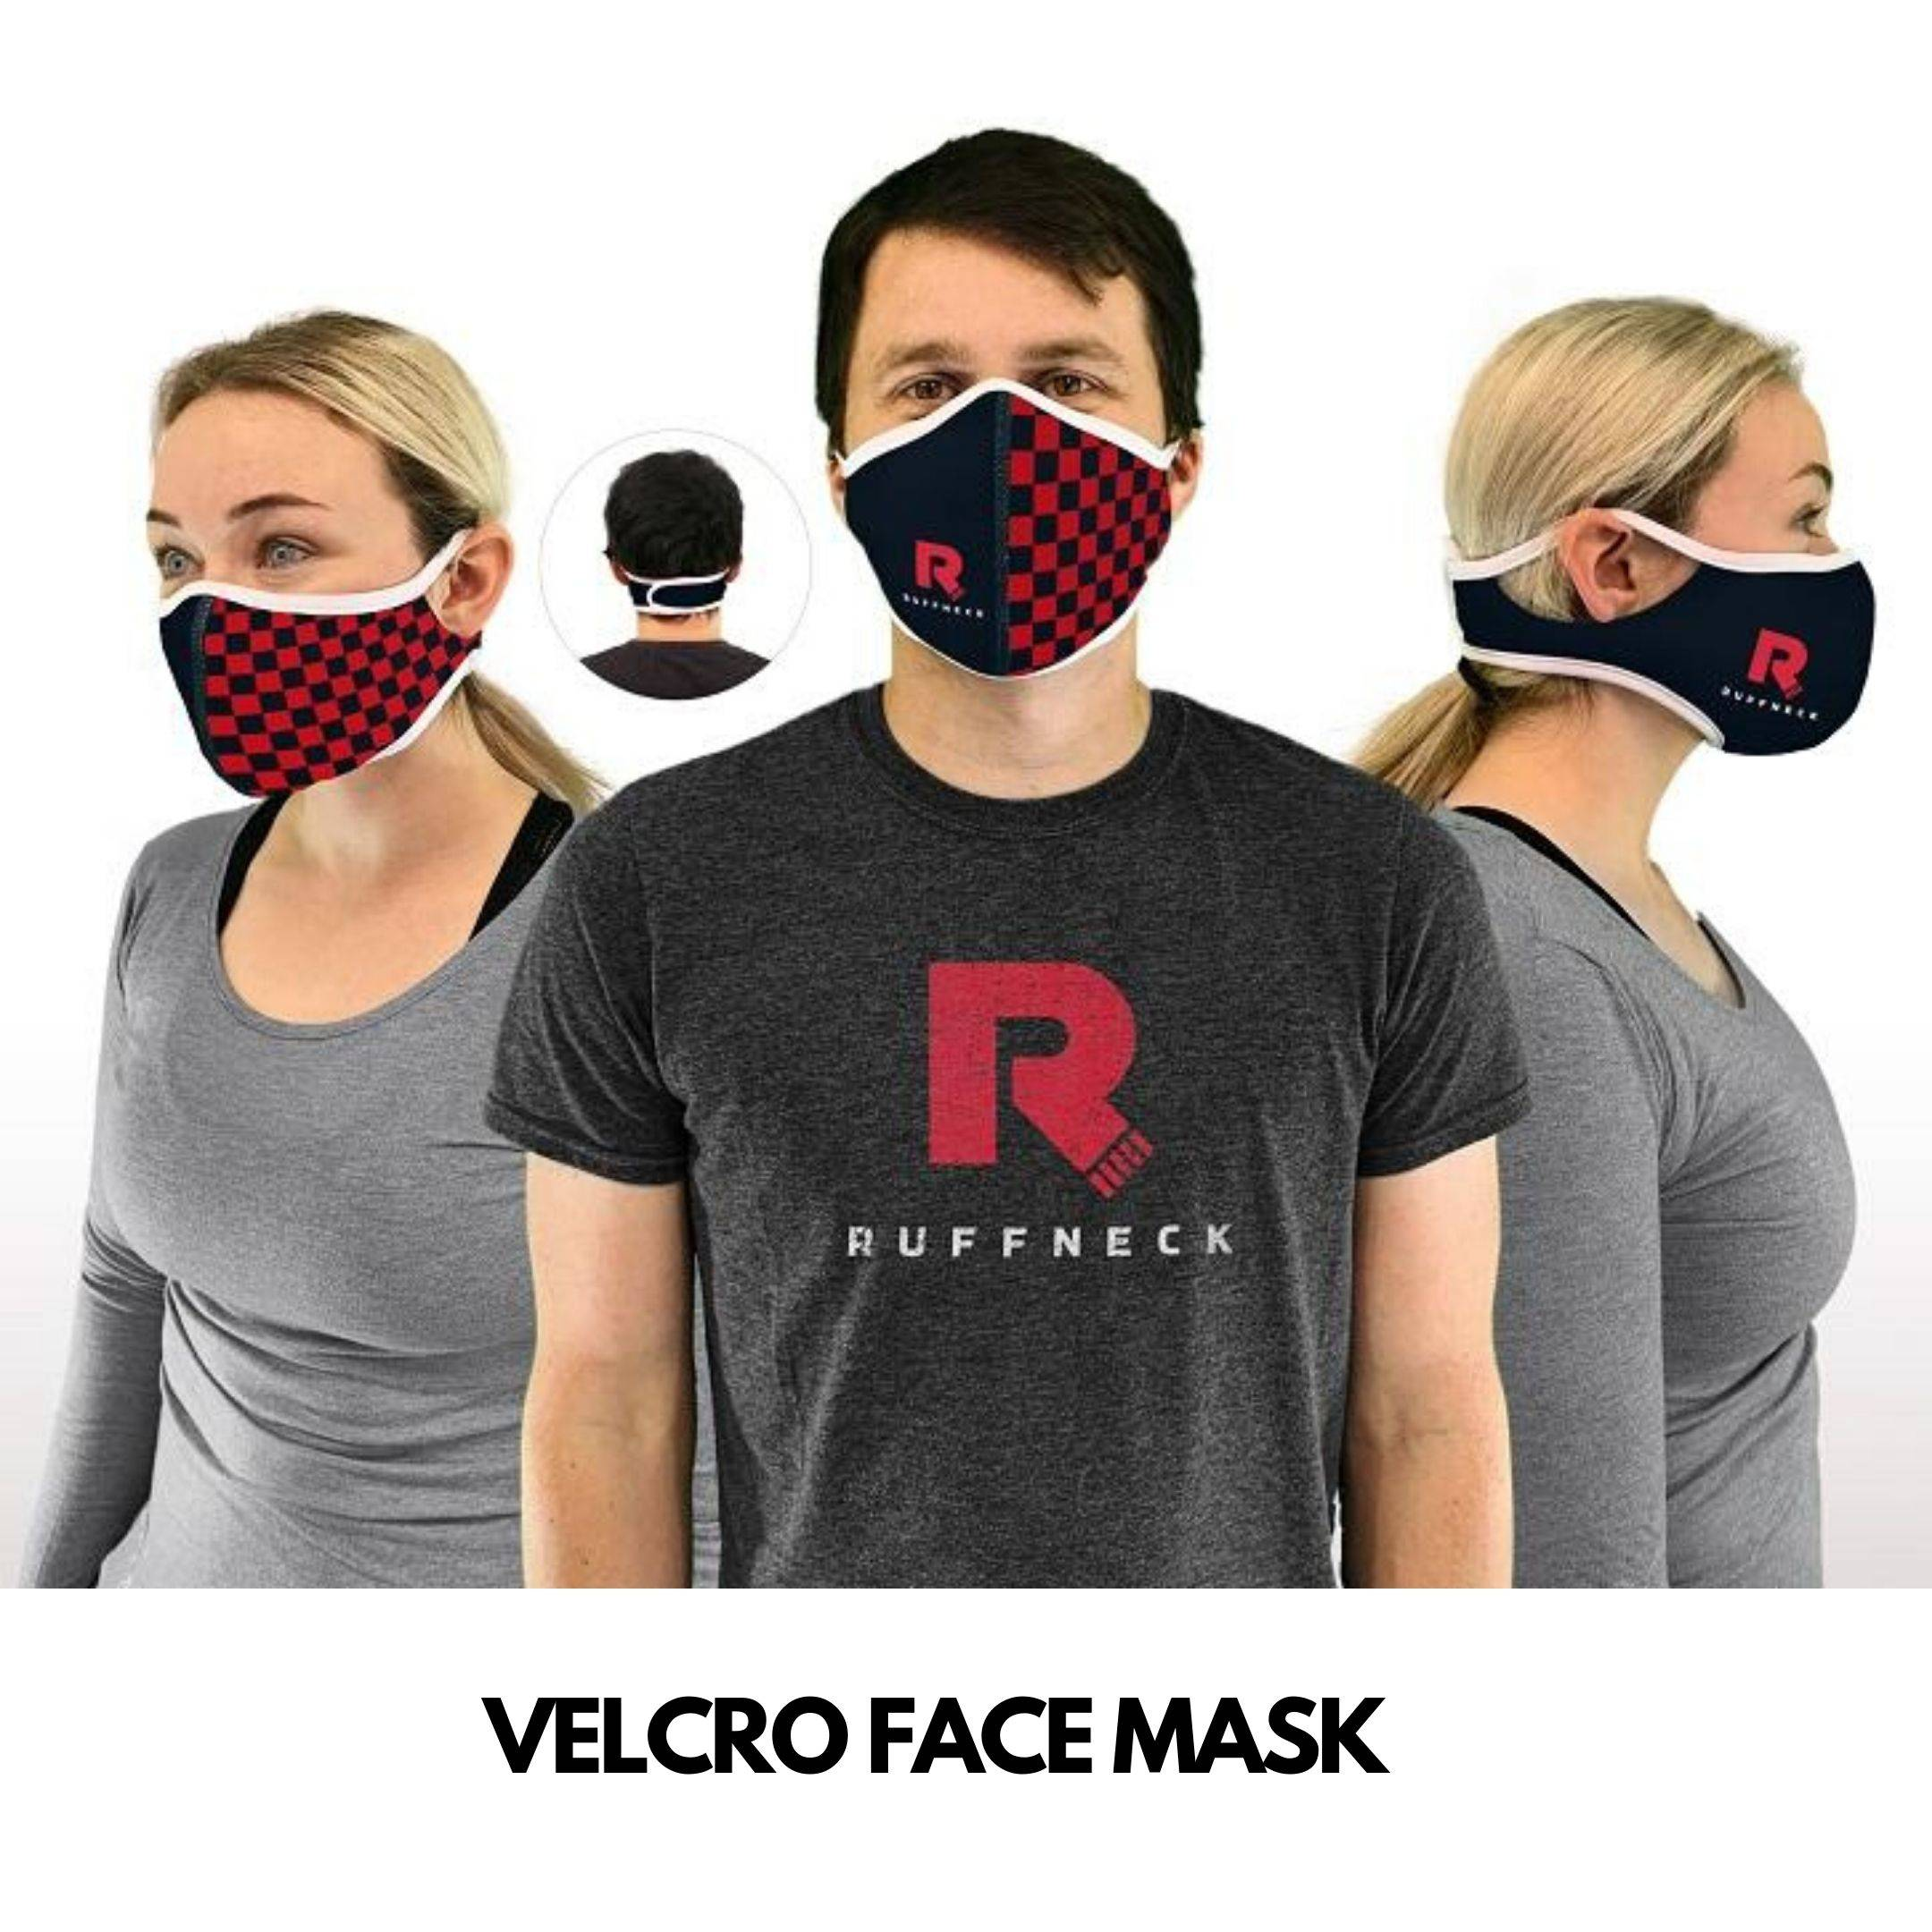 velcro face mask